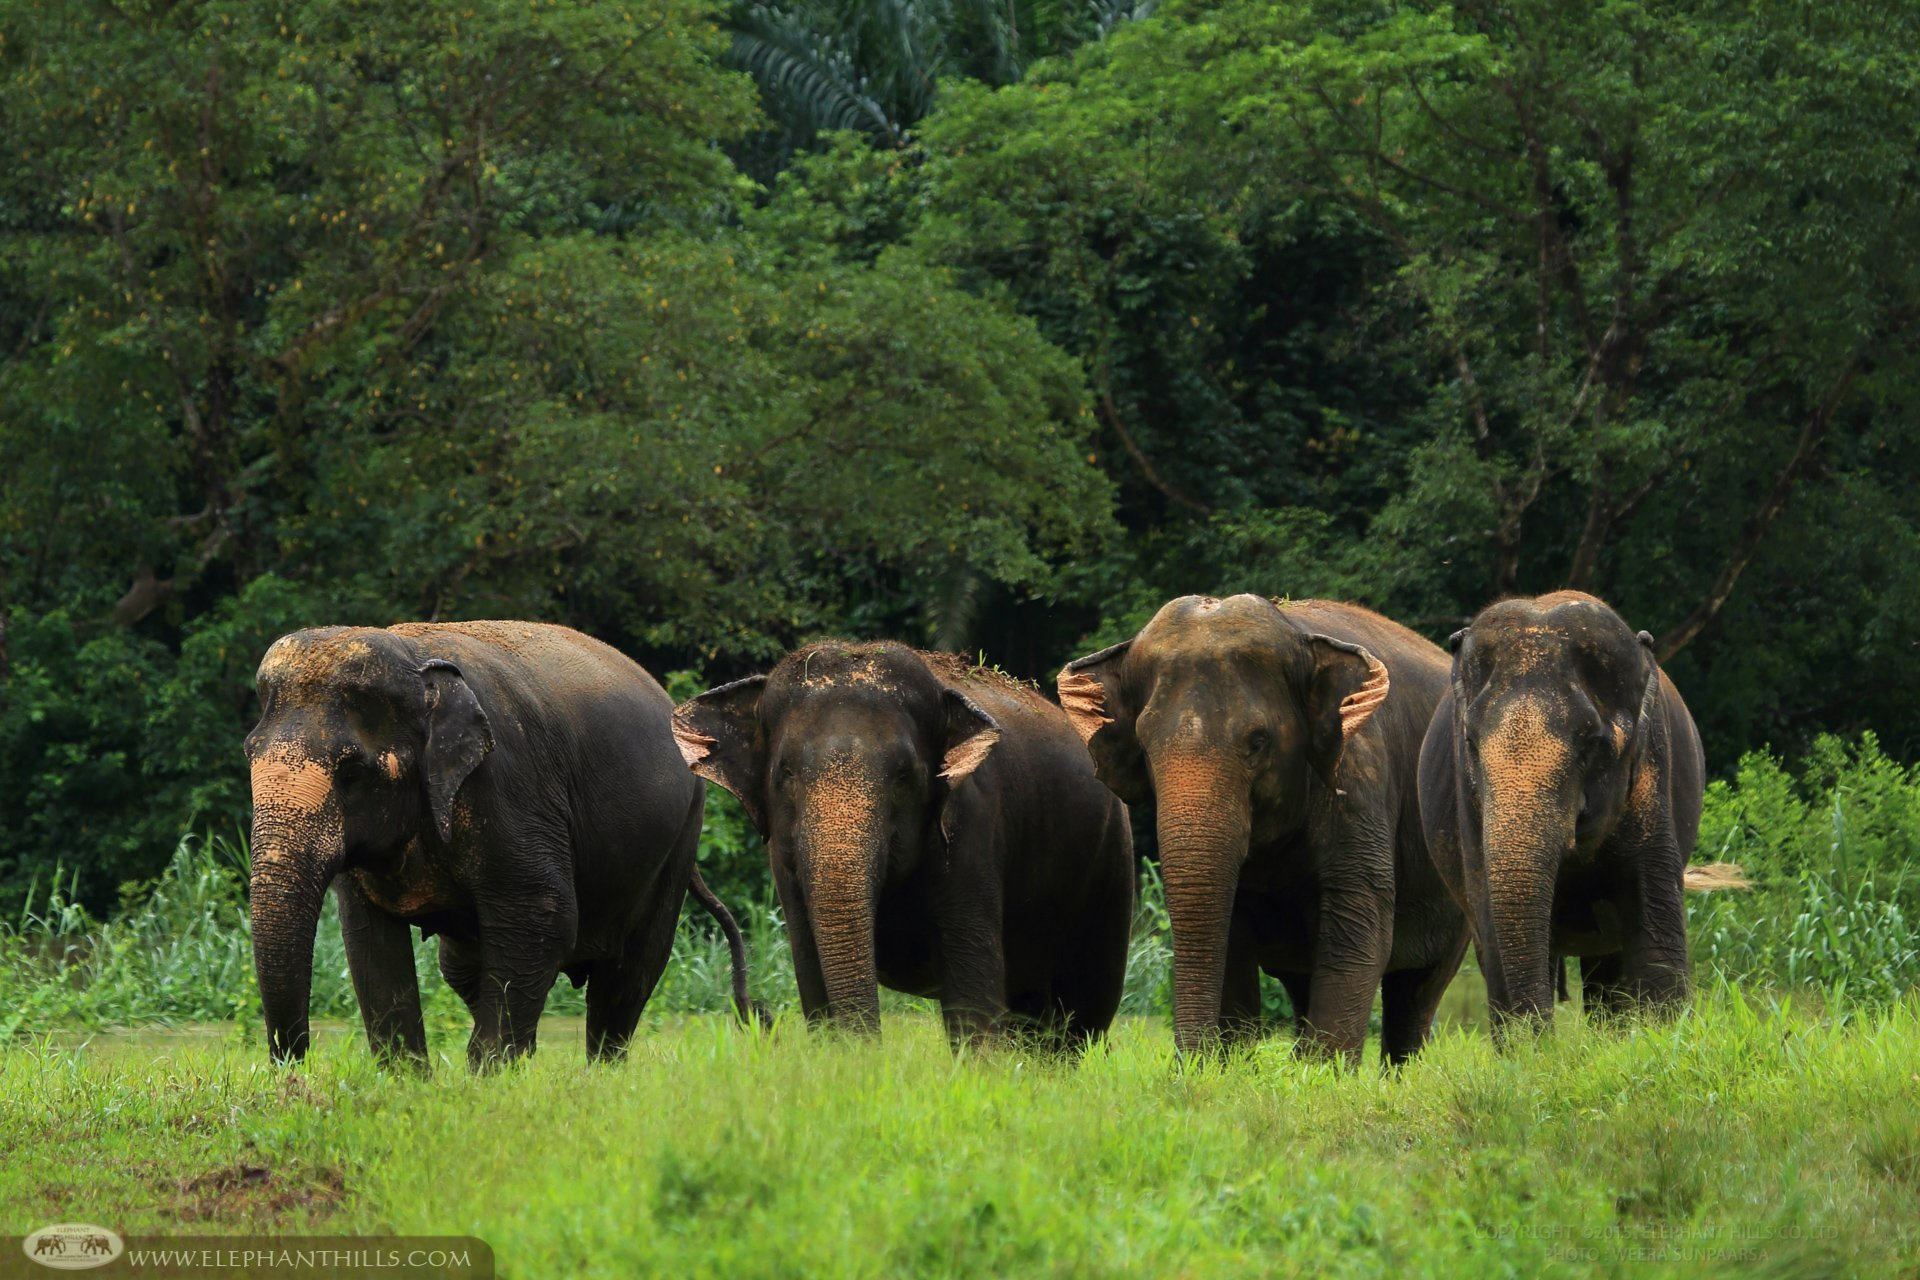 A group of female elephants at Elephant Hills